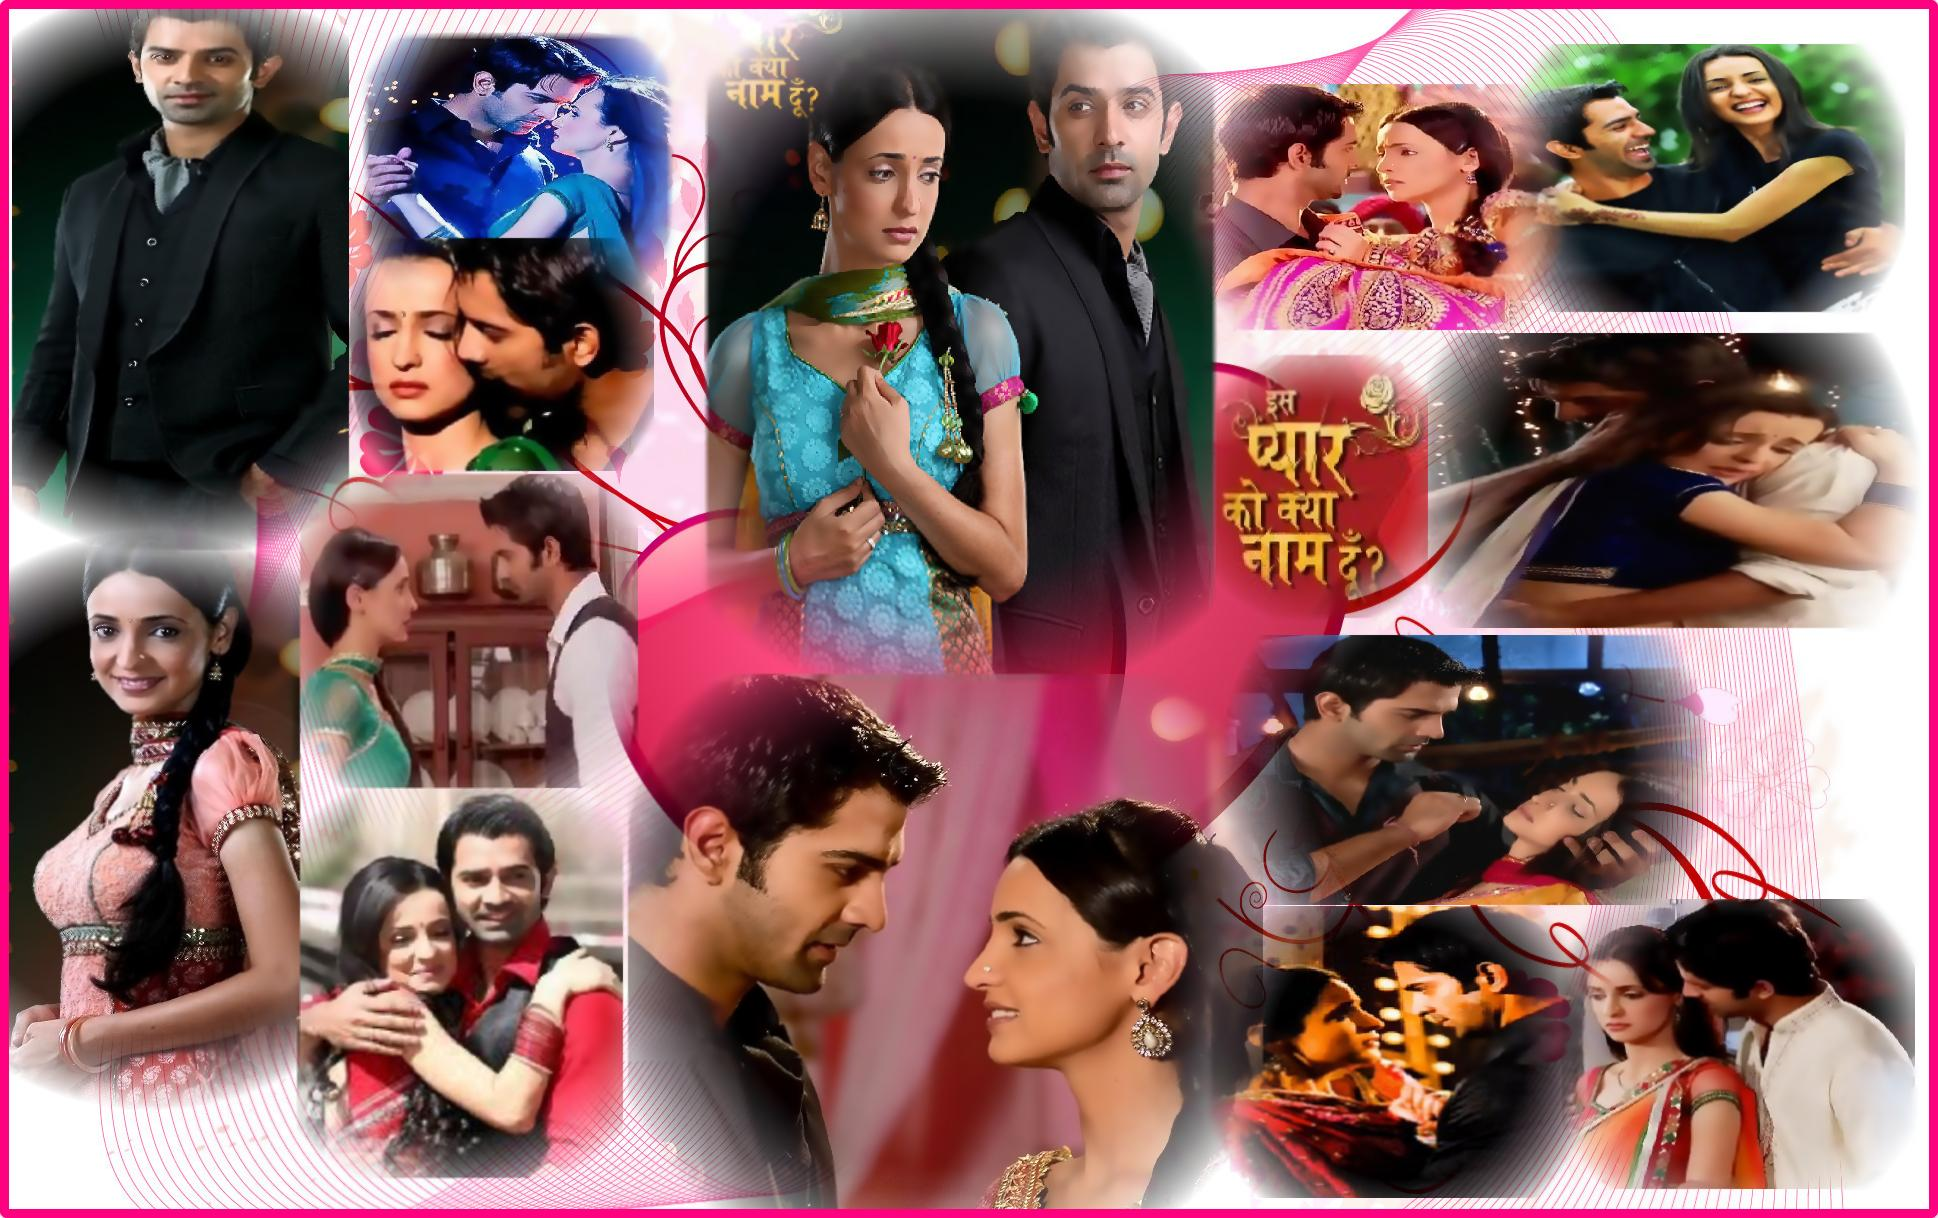 Iss Pyar Ko Kya Naam Doon Arushi Pictures to pin on Pinterest